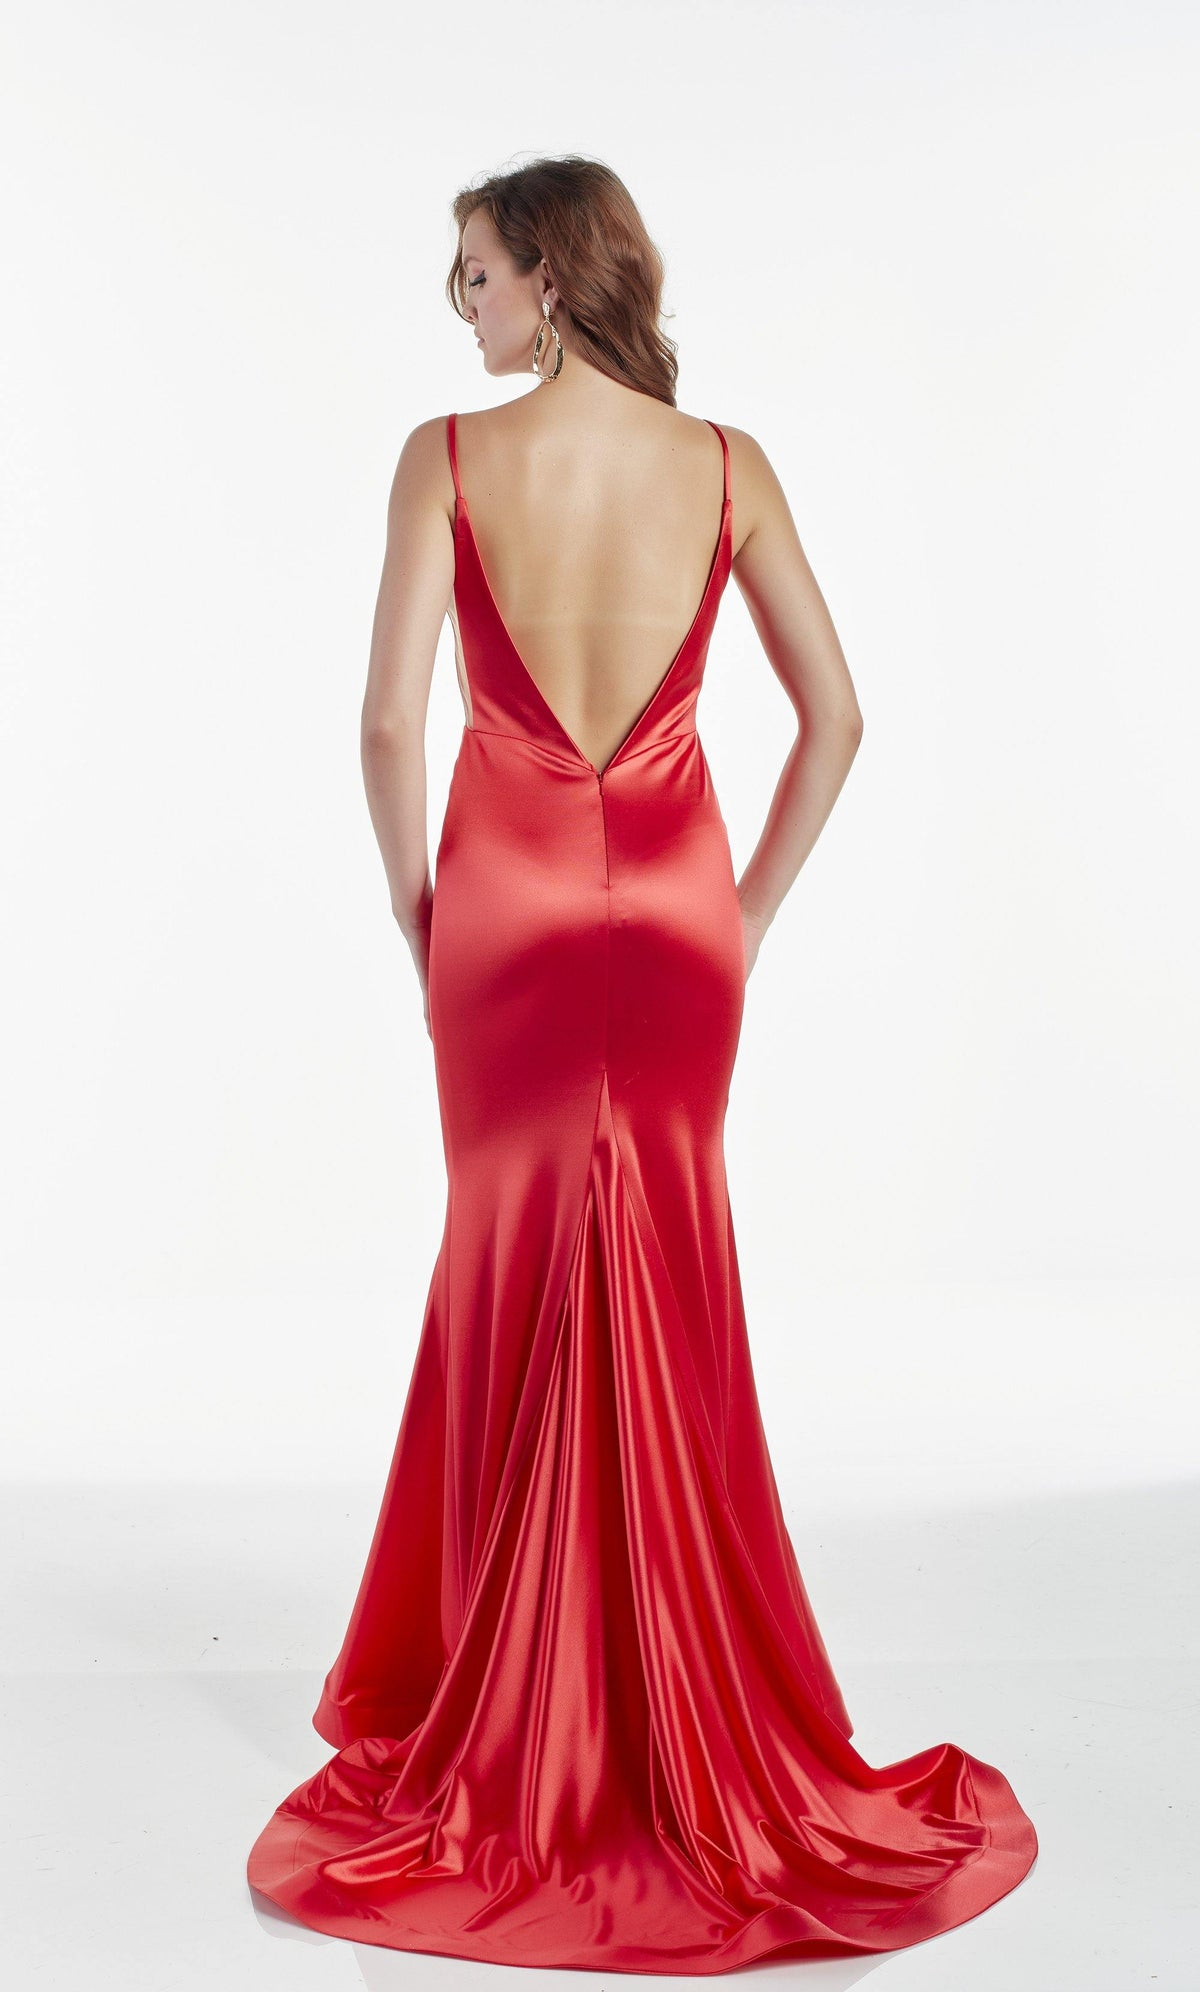 Red fit and flare prom dress with a train